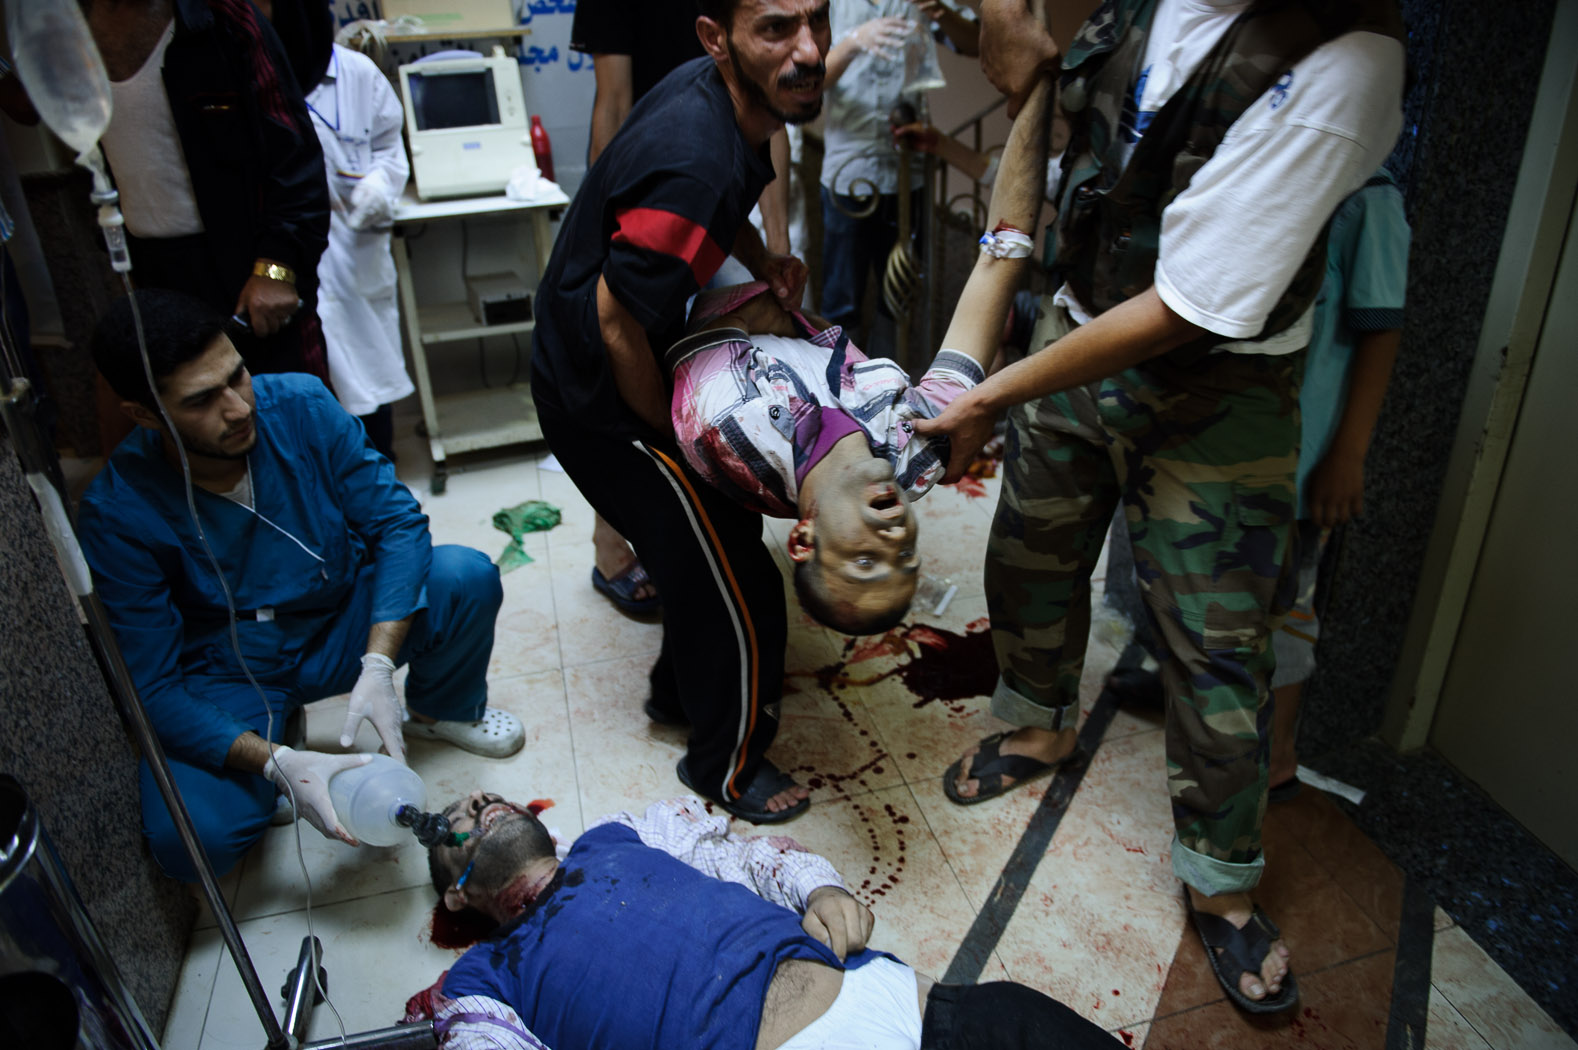 In Aleppo itself, the bodies stacked up, as doctors did all they could to deal with massive trauma with limited supplies.